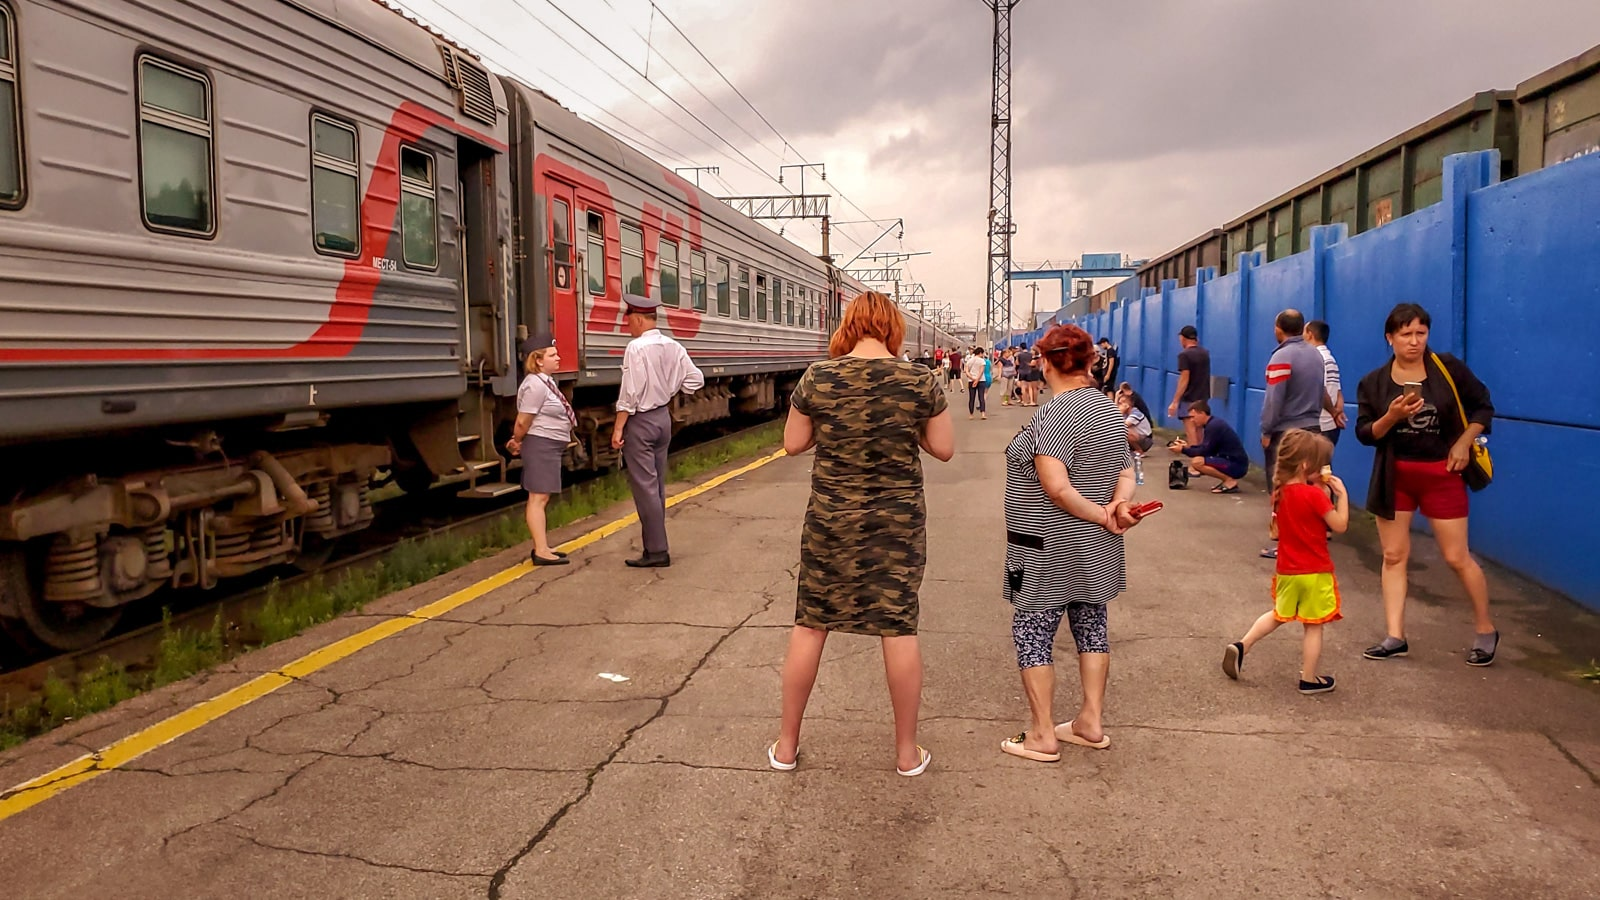 Train passengers standing at Marinsk train station, Russia